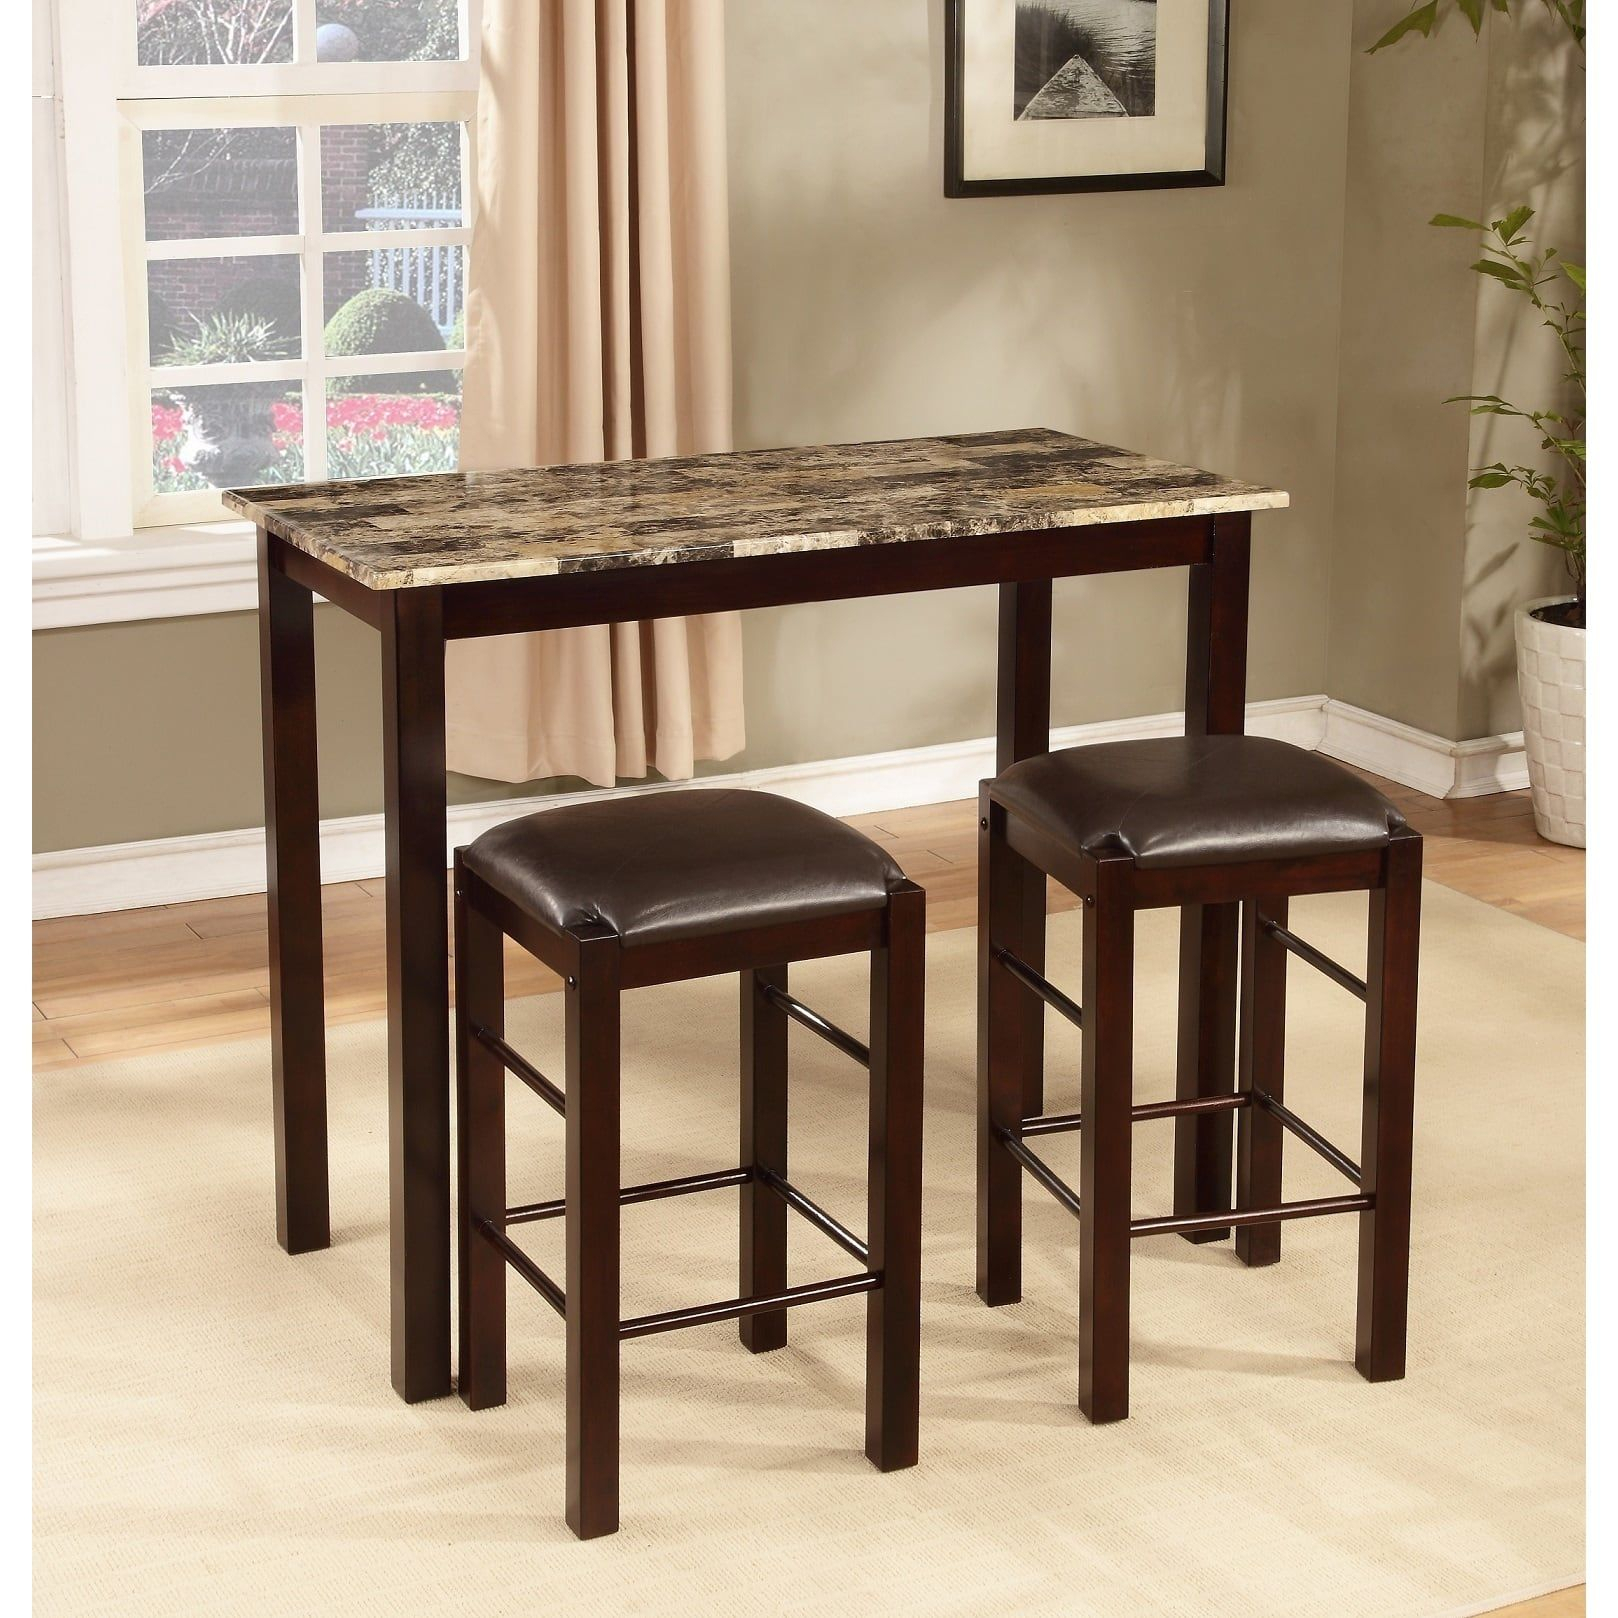 Fashionable Tenney 3 Piece Counter Height Dining Sets Regarding Copper Grove Luther 3 Piece Espresso Counter Height Table And Chair (#8 of 20)